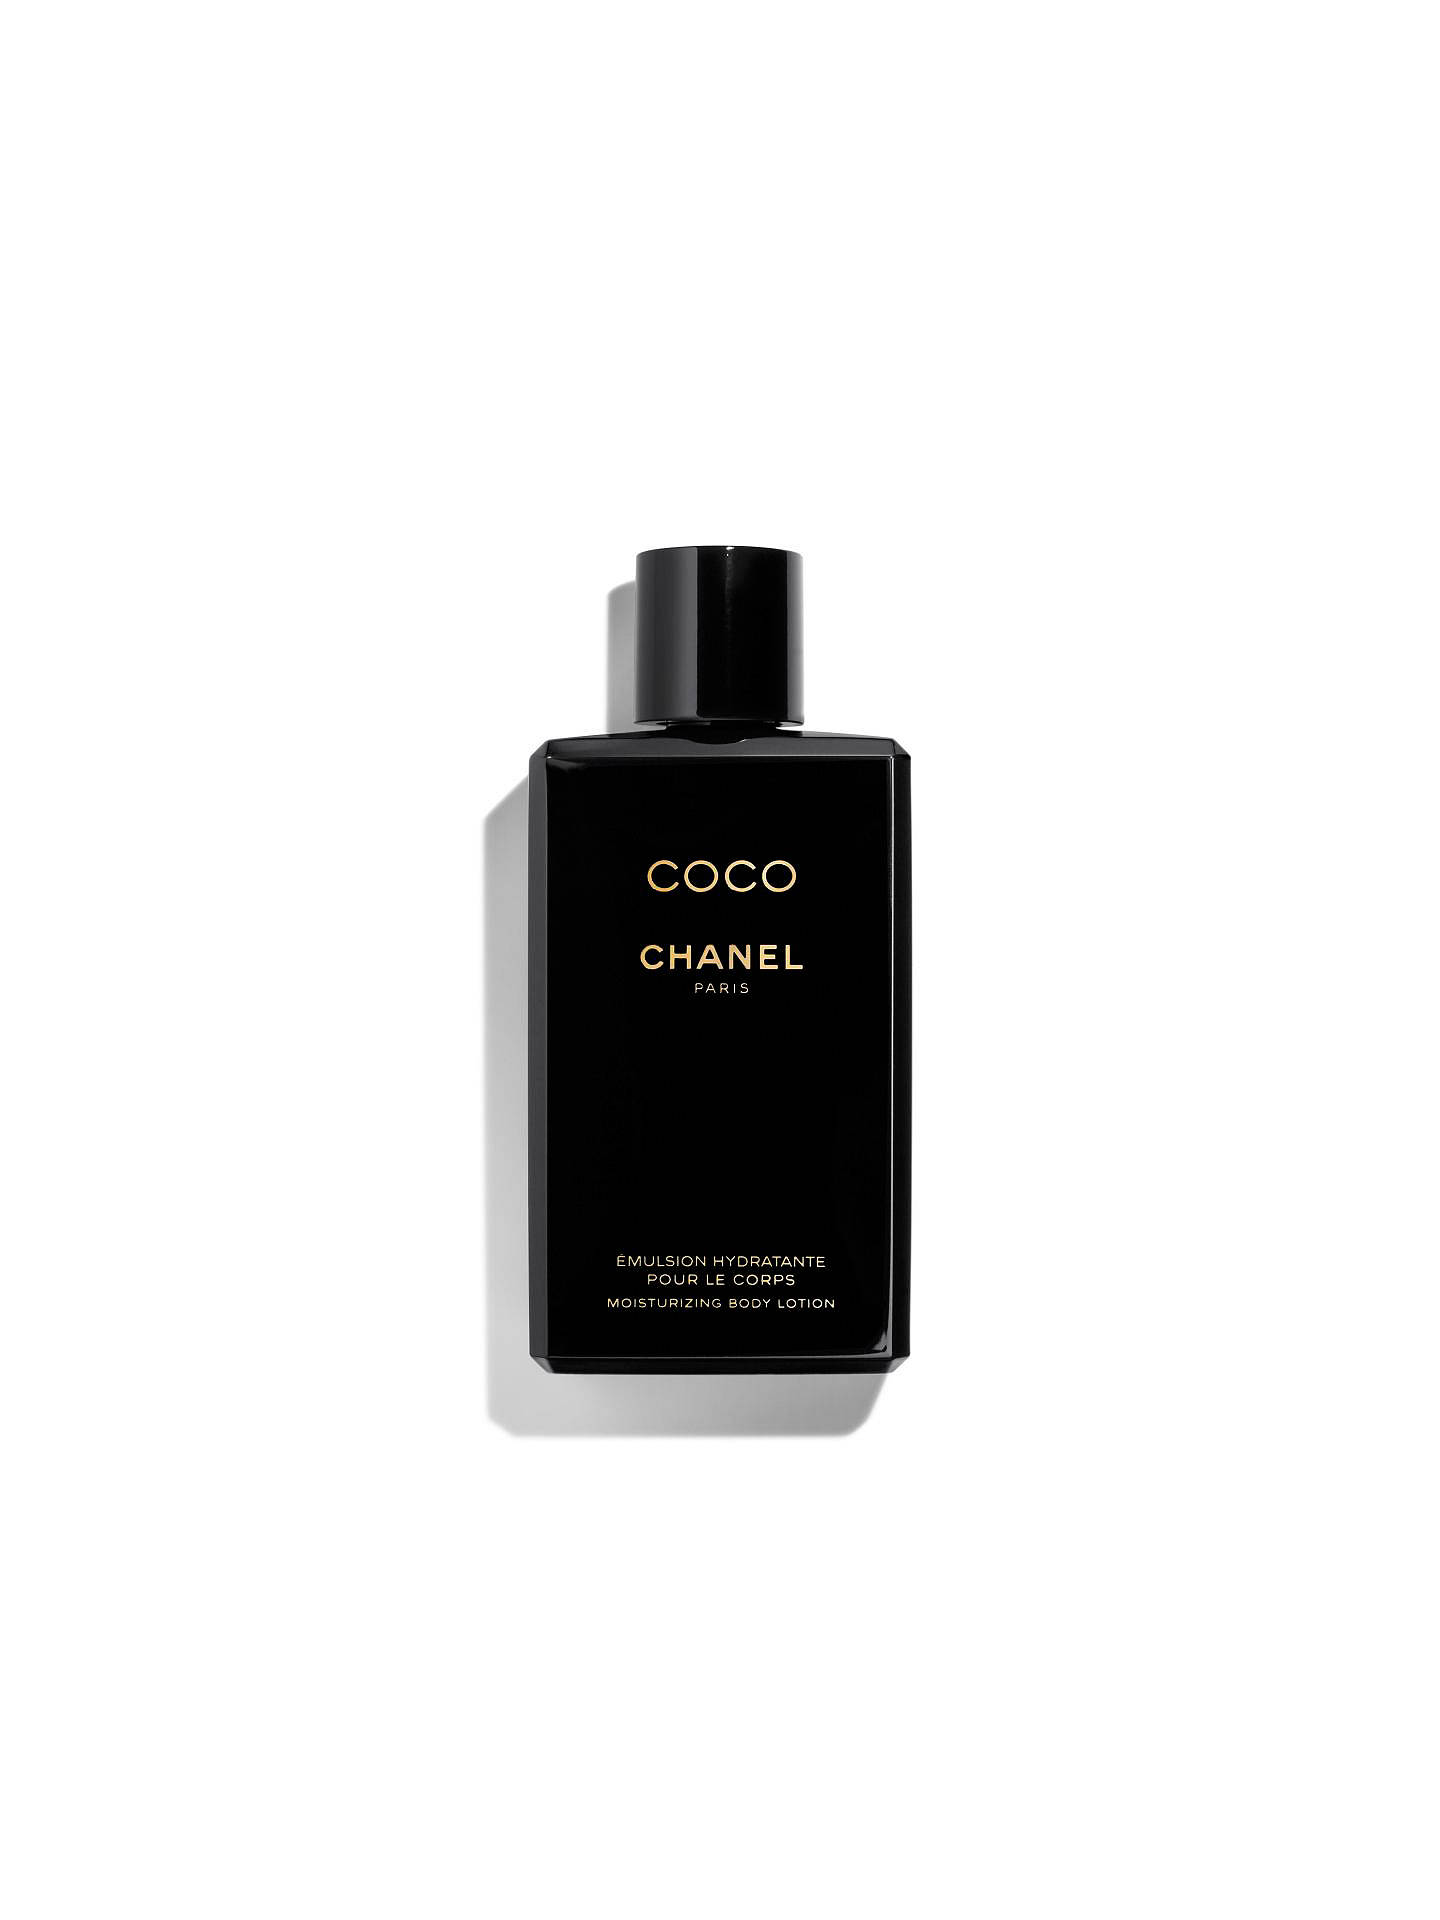 CHANEL COCO Moisturising Body Lotion at John Lewis & Partners